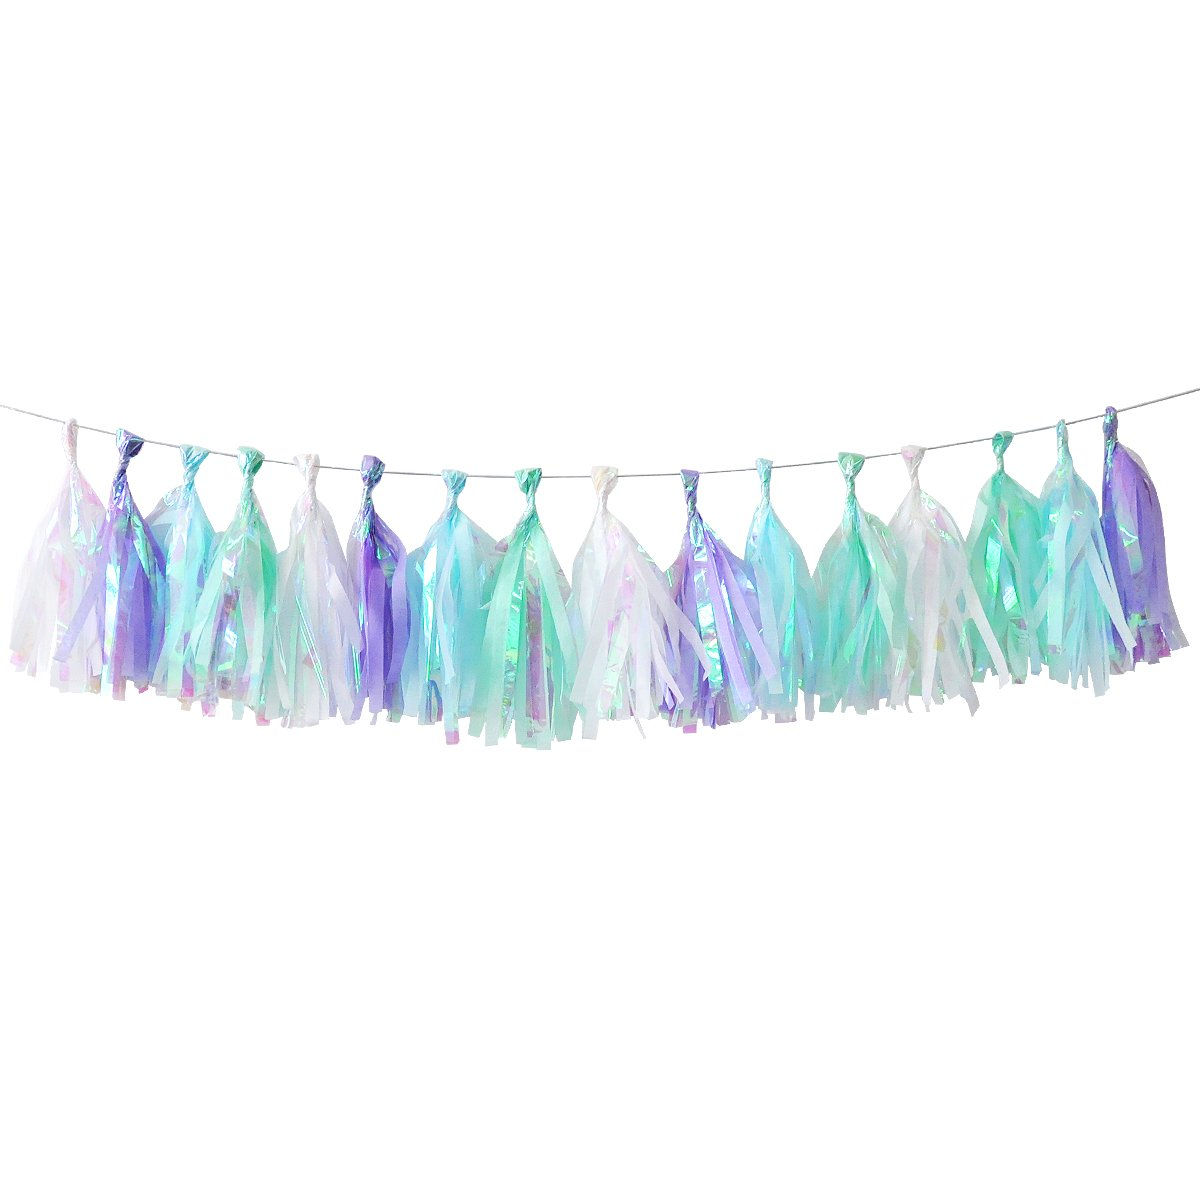 Nicrolandee 35 Pcs Iridescent Pastel Rainbow Tassel Garland for Baby Shower Decor Mermaid 1st Birthday Party High Chair Banner 7.5 inches